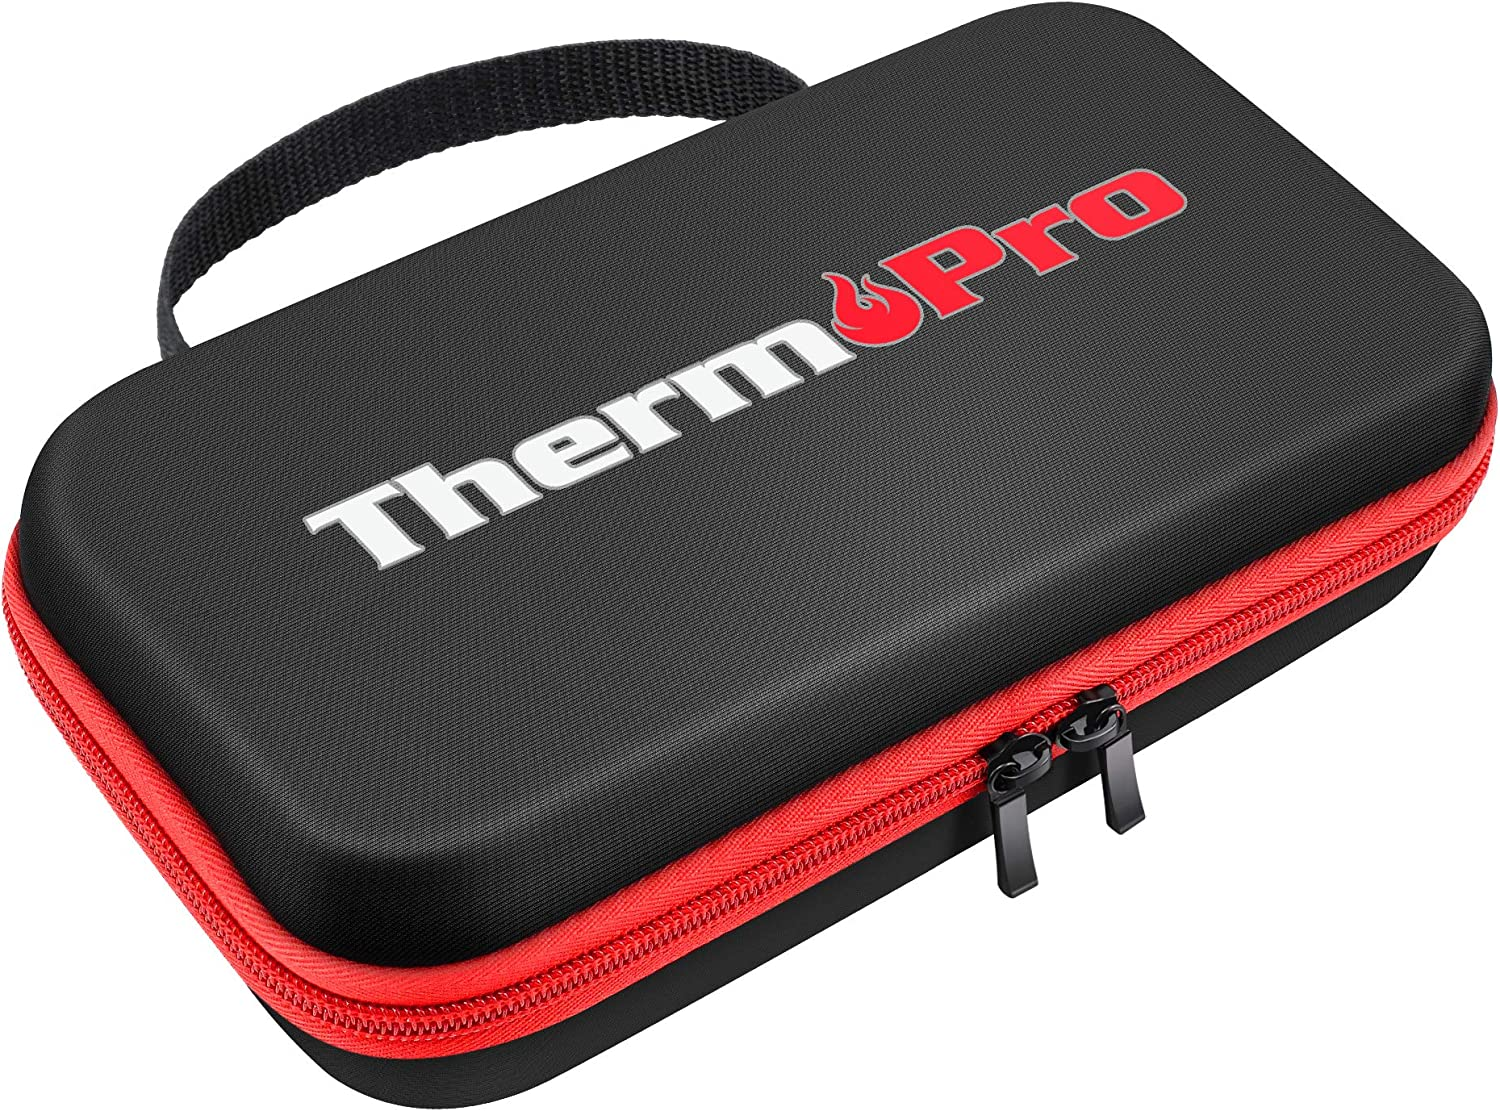 ThermoPro TP98 Hard Carrying Case Storage Bag for TP-16, TP-16S, TP-17,TP-17H Digital Cooking Food Meat Thermometer, Shockproof Waterproof Black Travel Protective Case/Box/Organizer